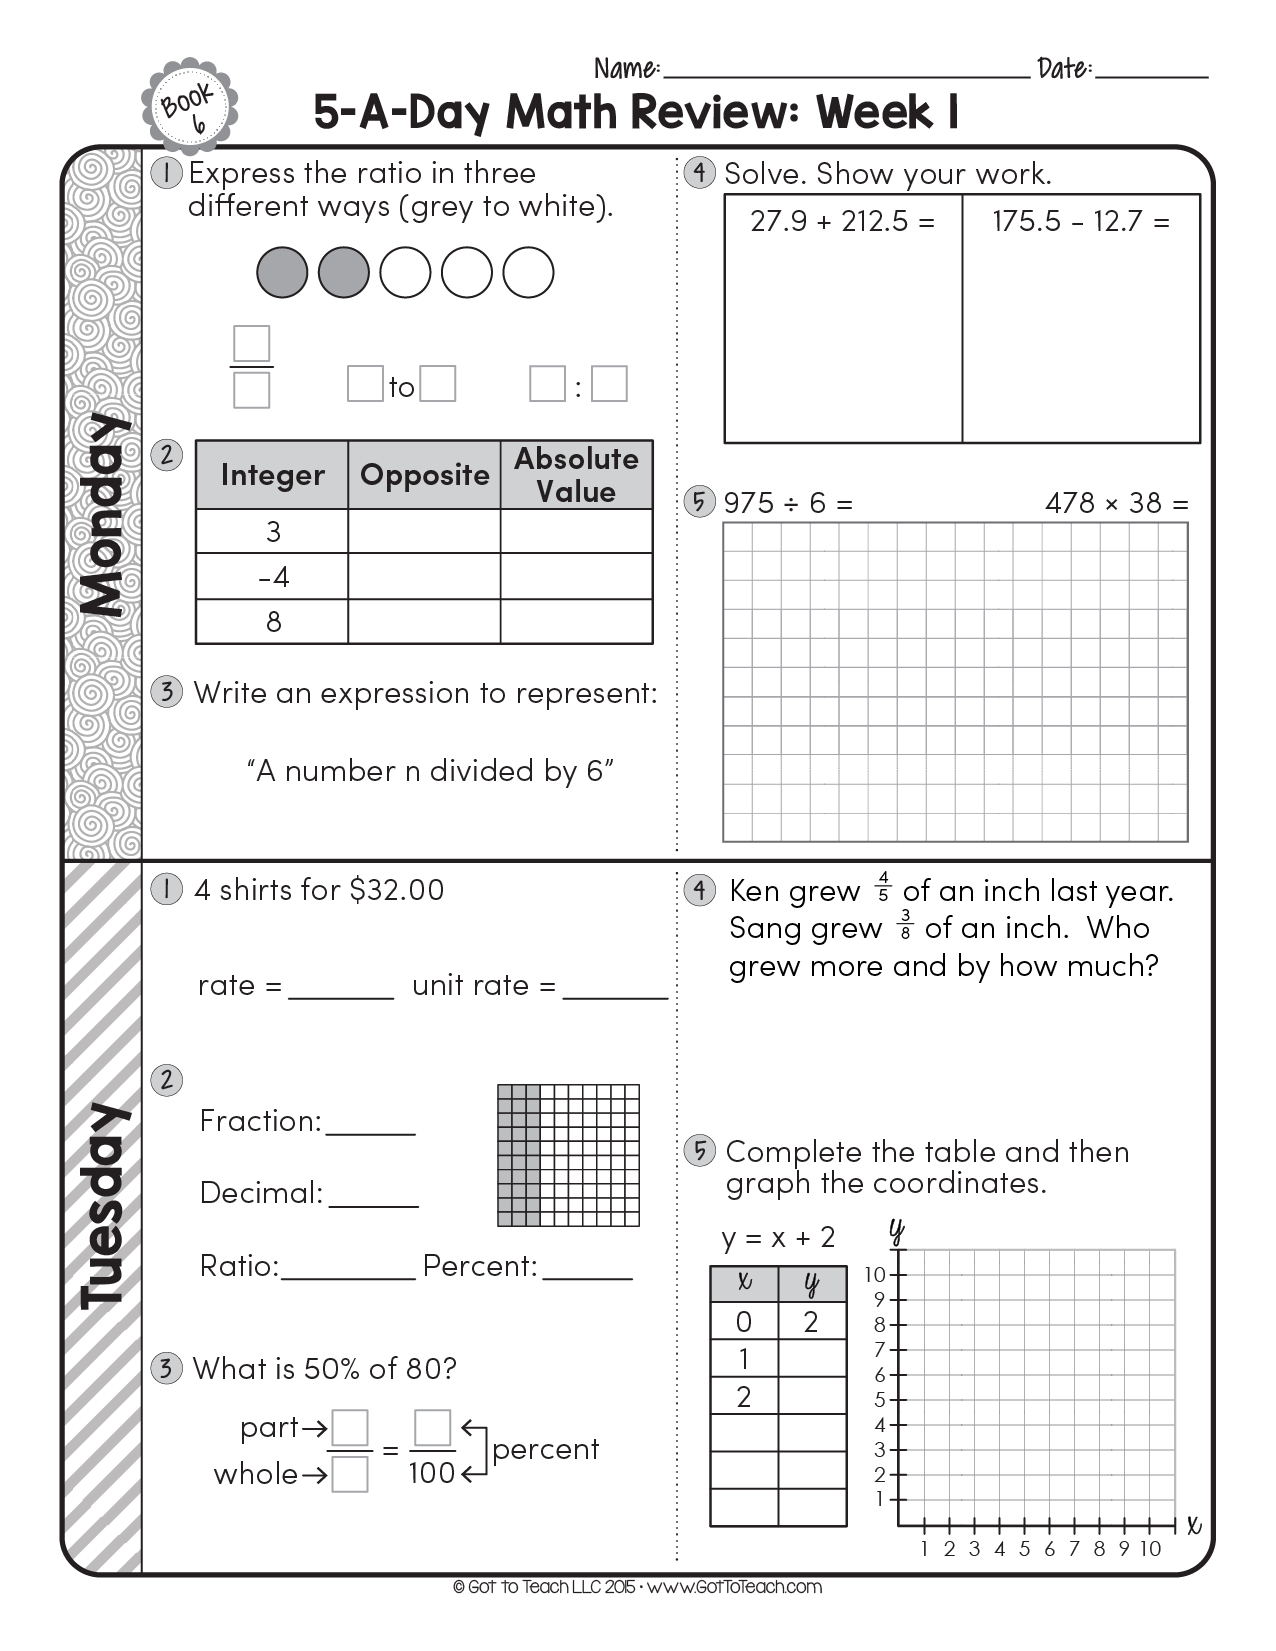 medium resolution of Daily Math Spiral Worksheet   Printable Worksheets and Activities for  Teachers